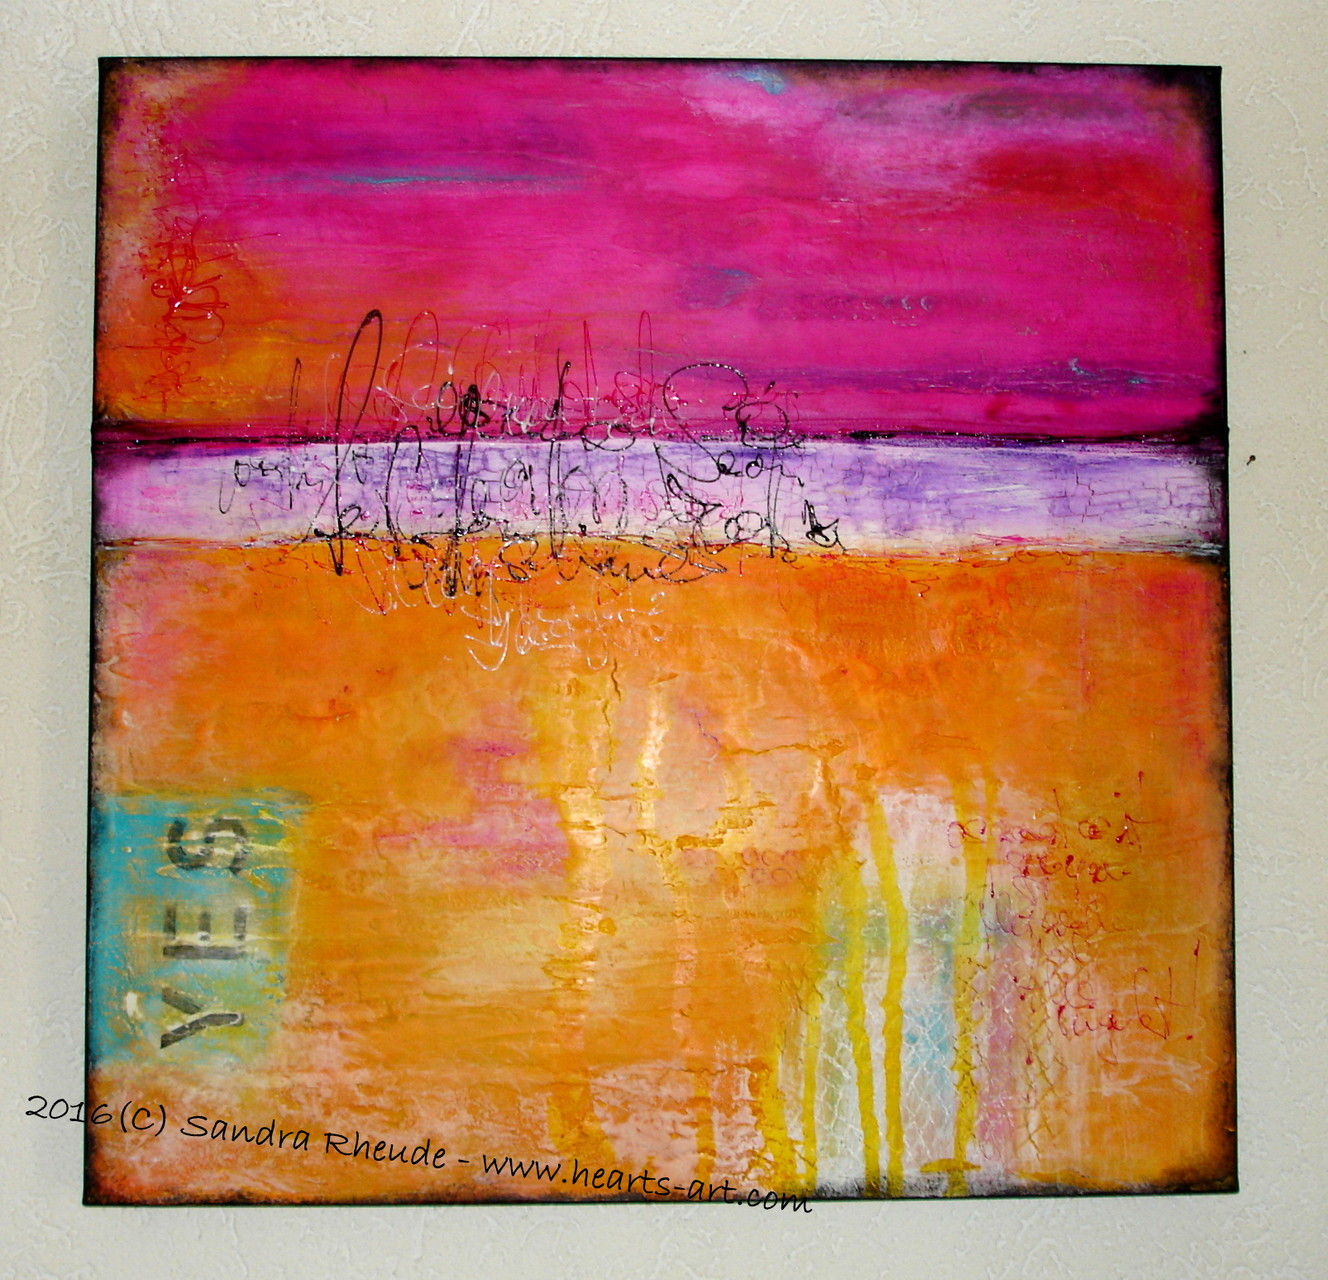 'Walkin' on Sunshine' -  2016/15 - Acryl/MixedMedia auf Leinwand - 70 x 70 x 4,5 cm - € 1111